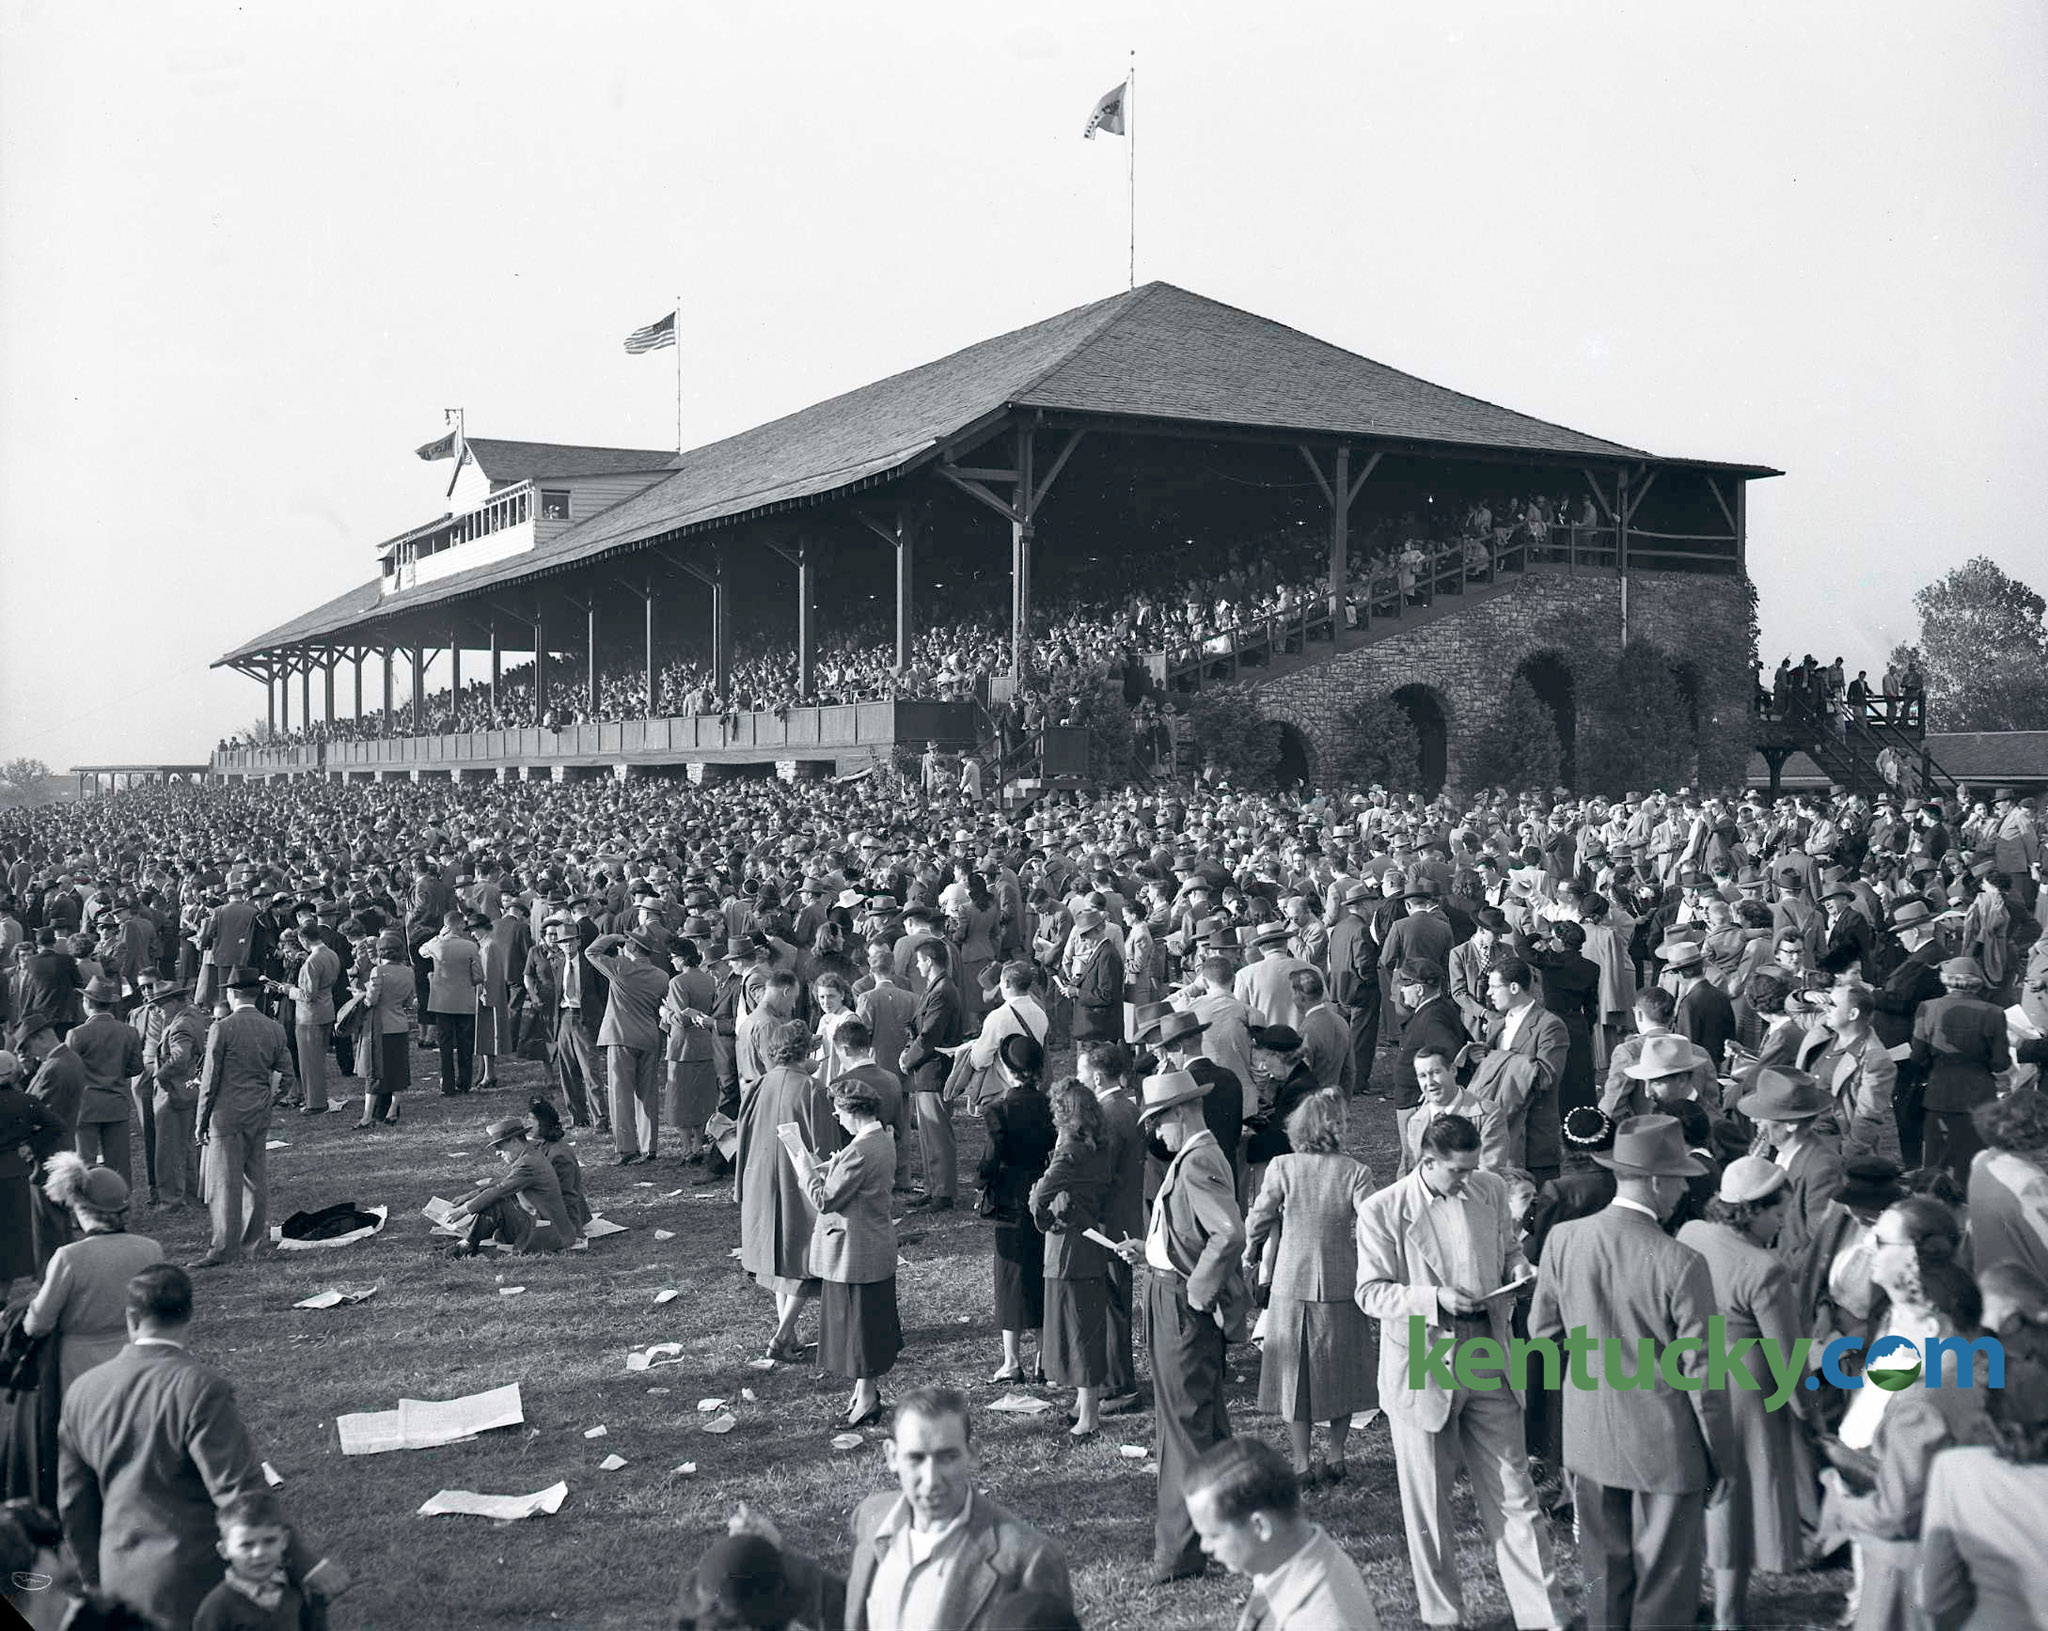 The amazing crowd at Keeneland in 1930s